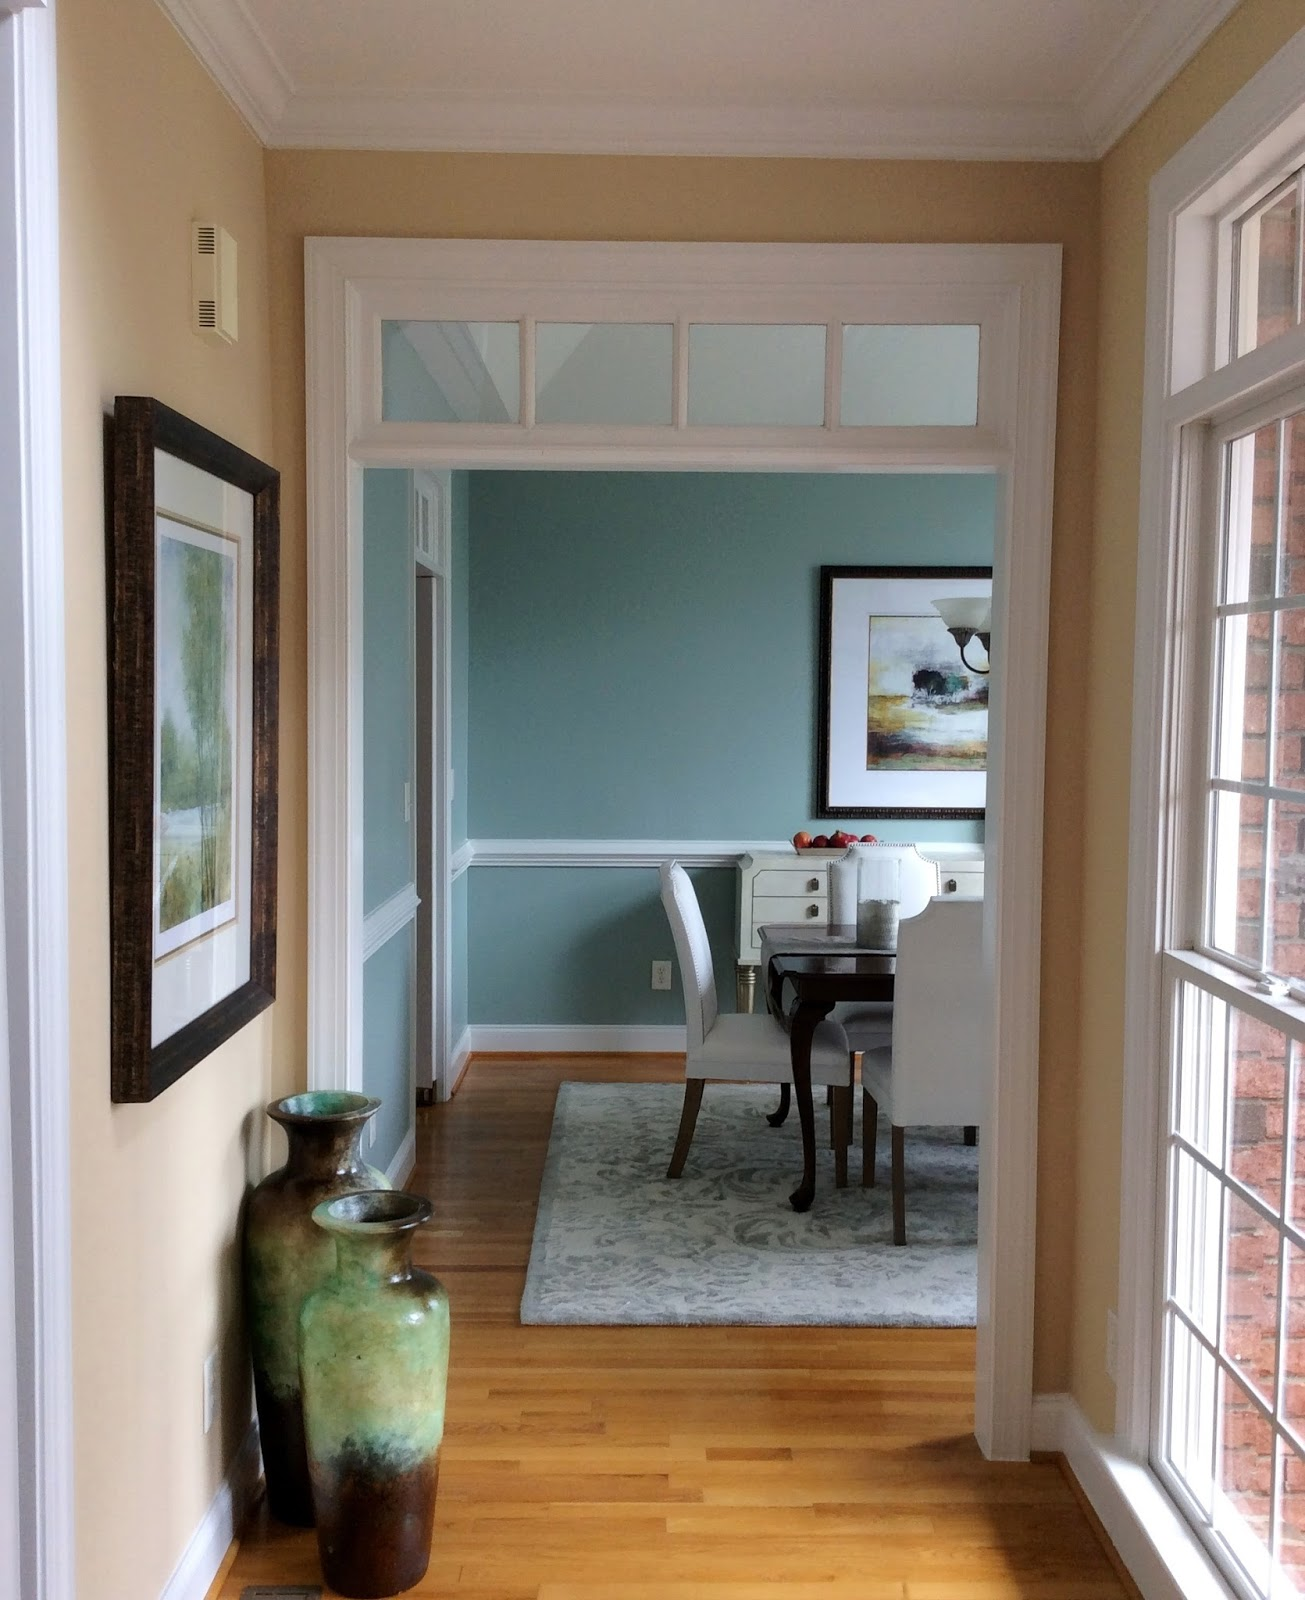 kitchen planning cool ideas nc best designers online decorating king greensboro remodel at house interiors kitchens design interior simple soup with in christy